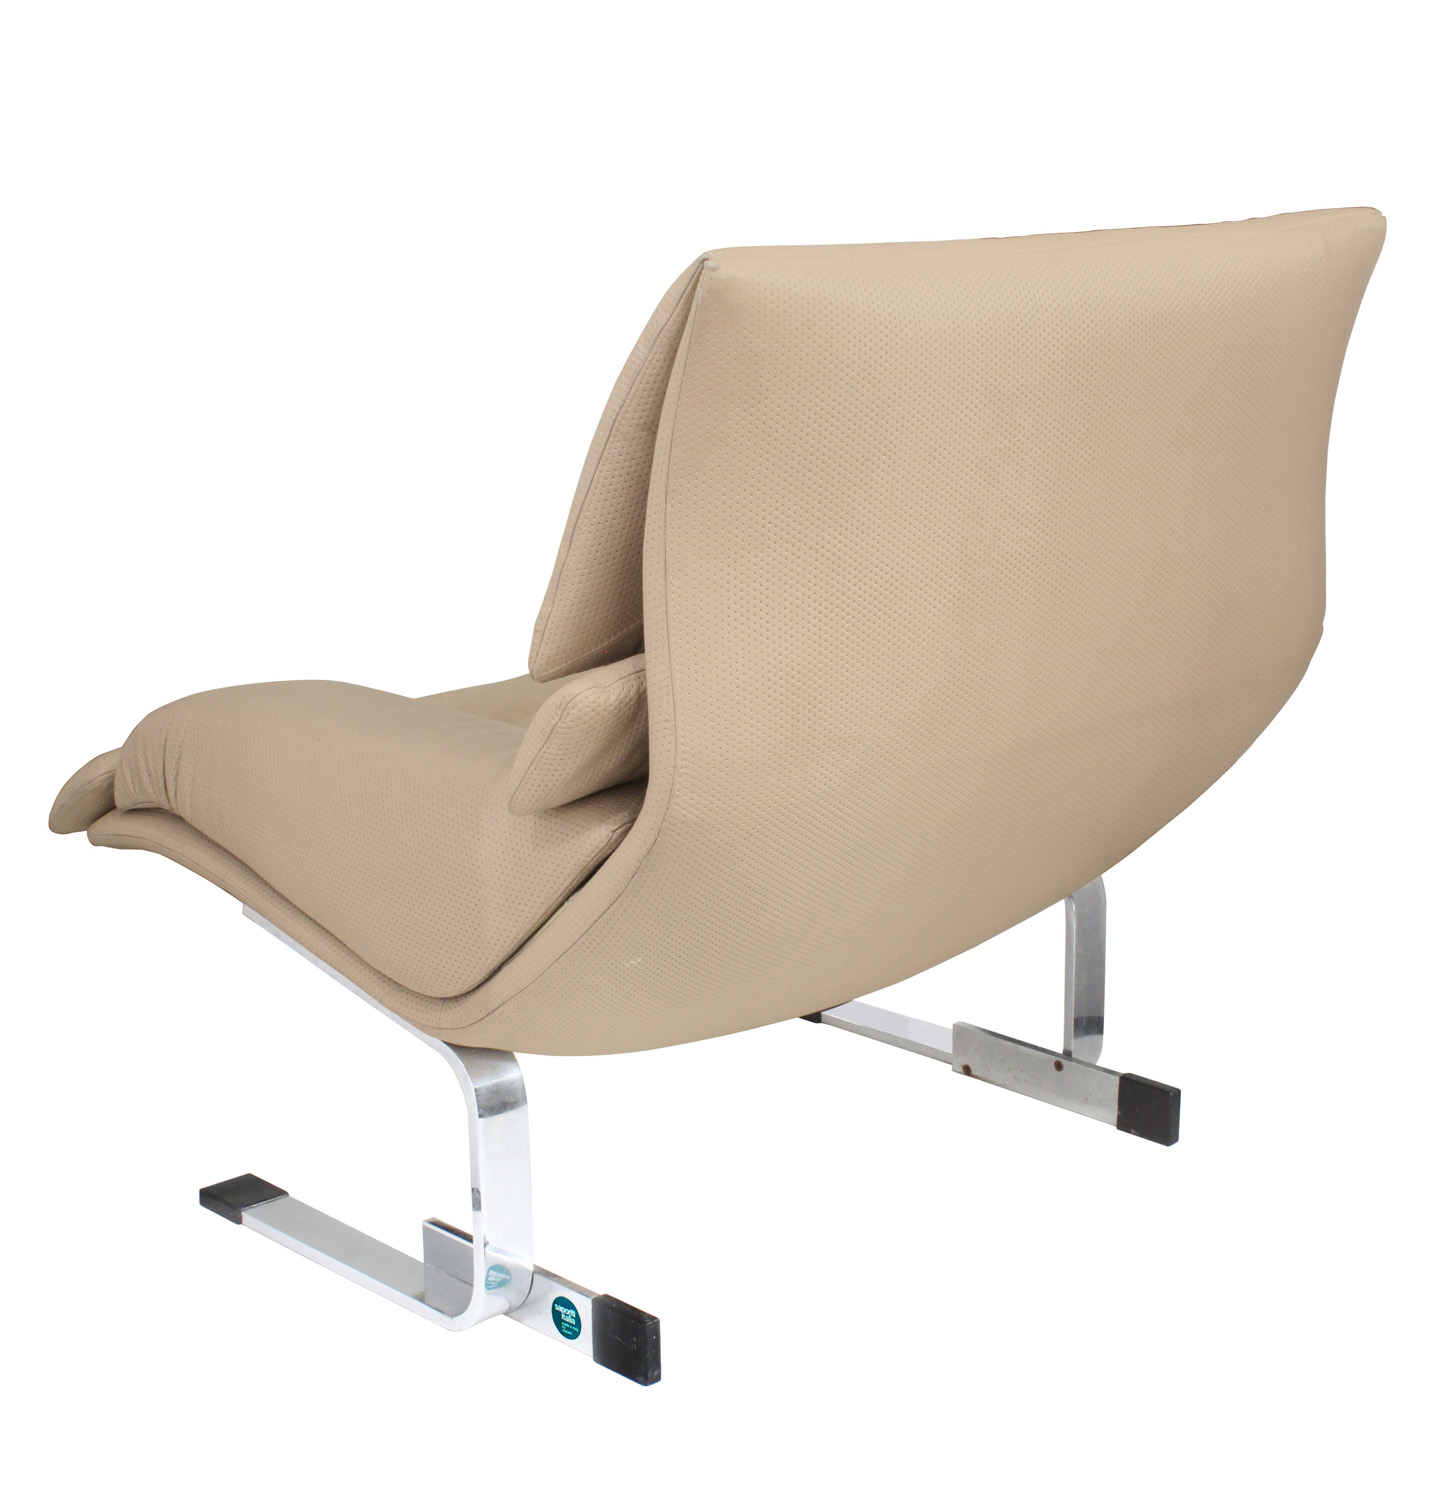 Onda 95 arms brown leather loungechairs152 detail3 hires.jpg